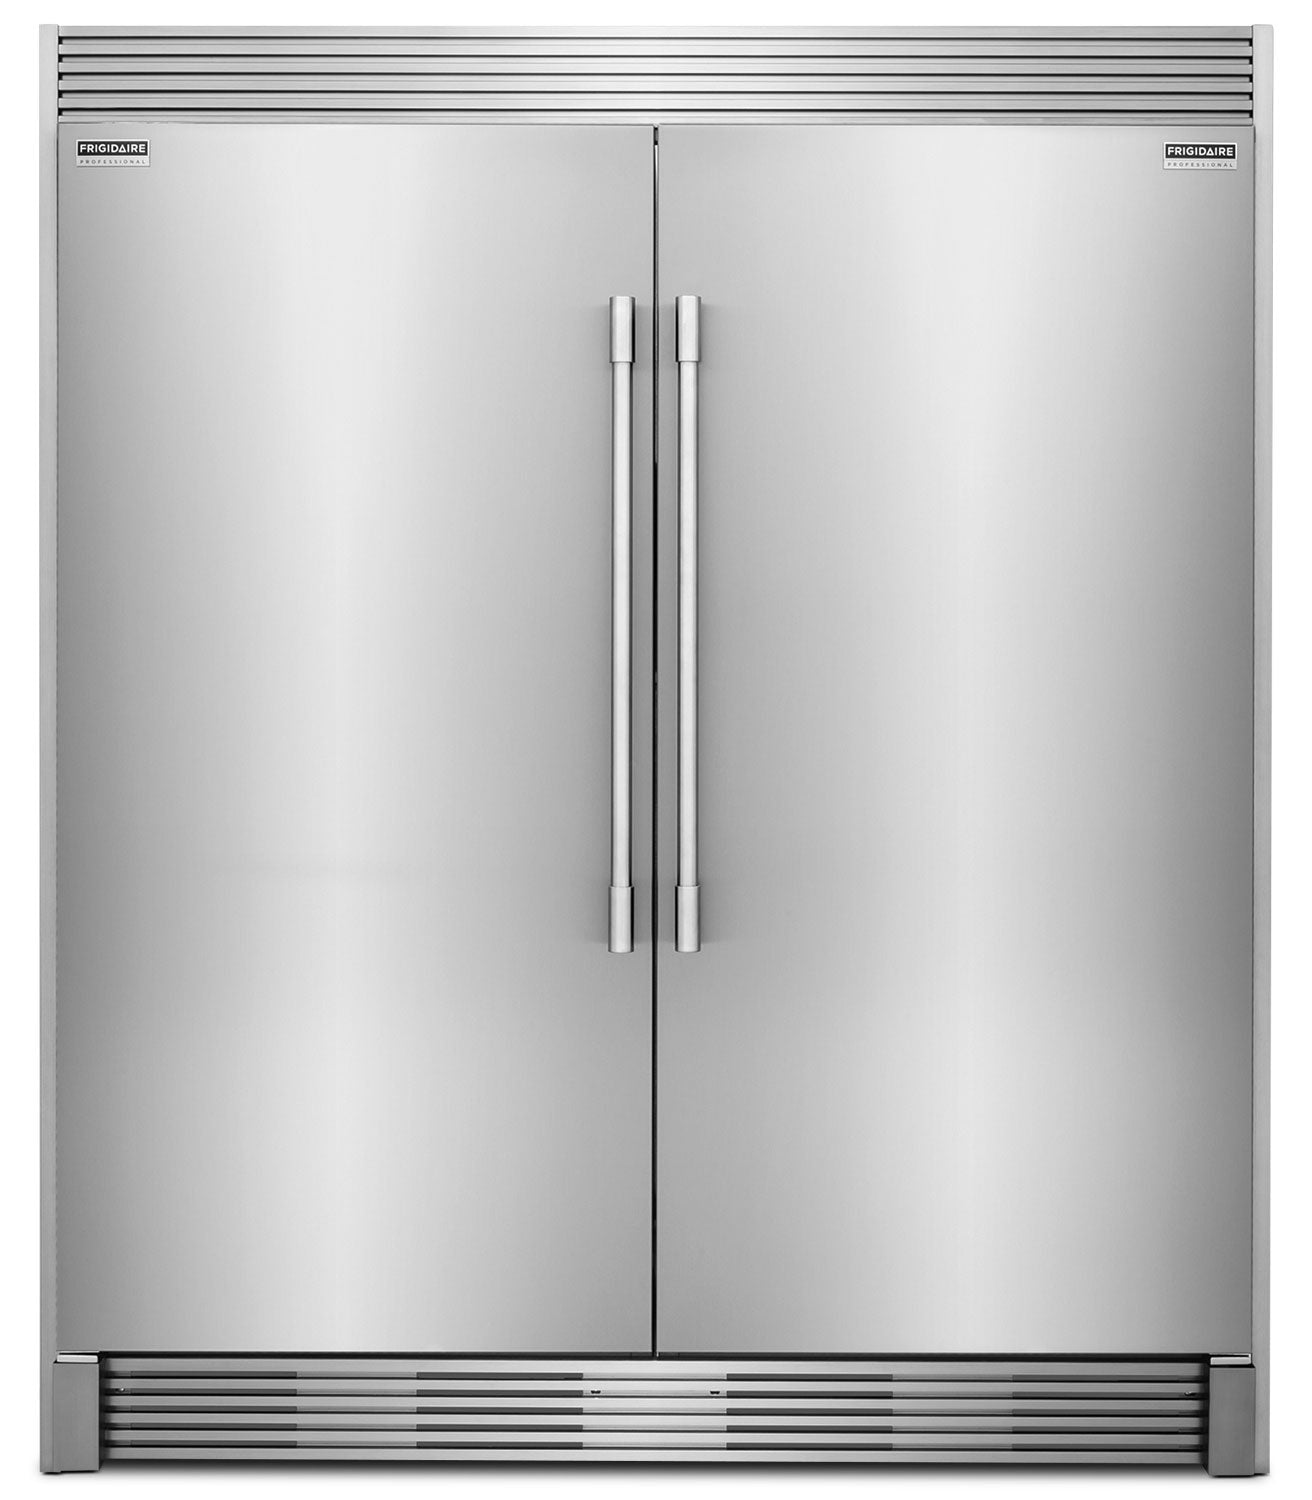 Frigidaire Professional 19 Cu  Ft  Refrigerator, 19 Cu  Ft  Freezer and  Trim Kit Package